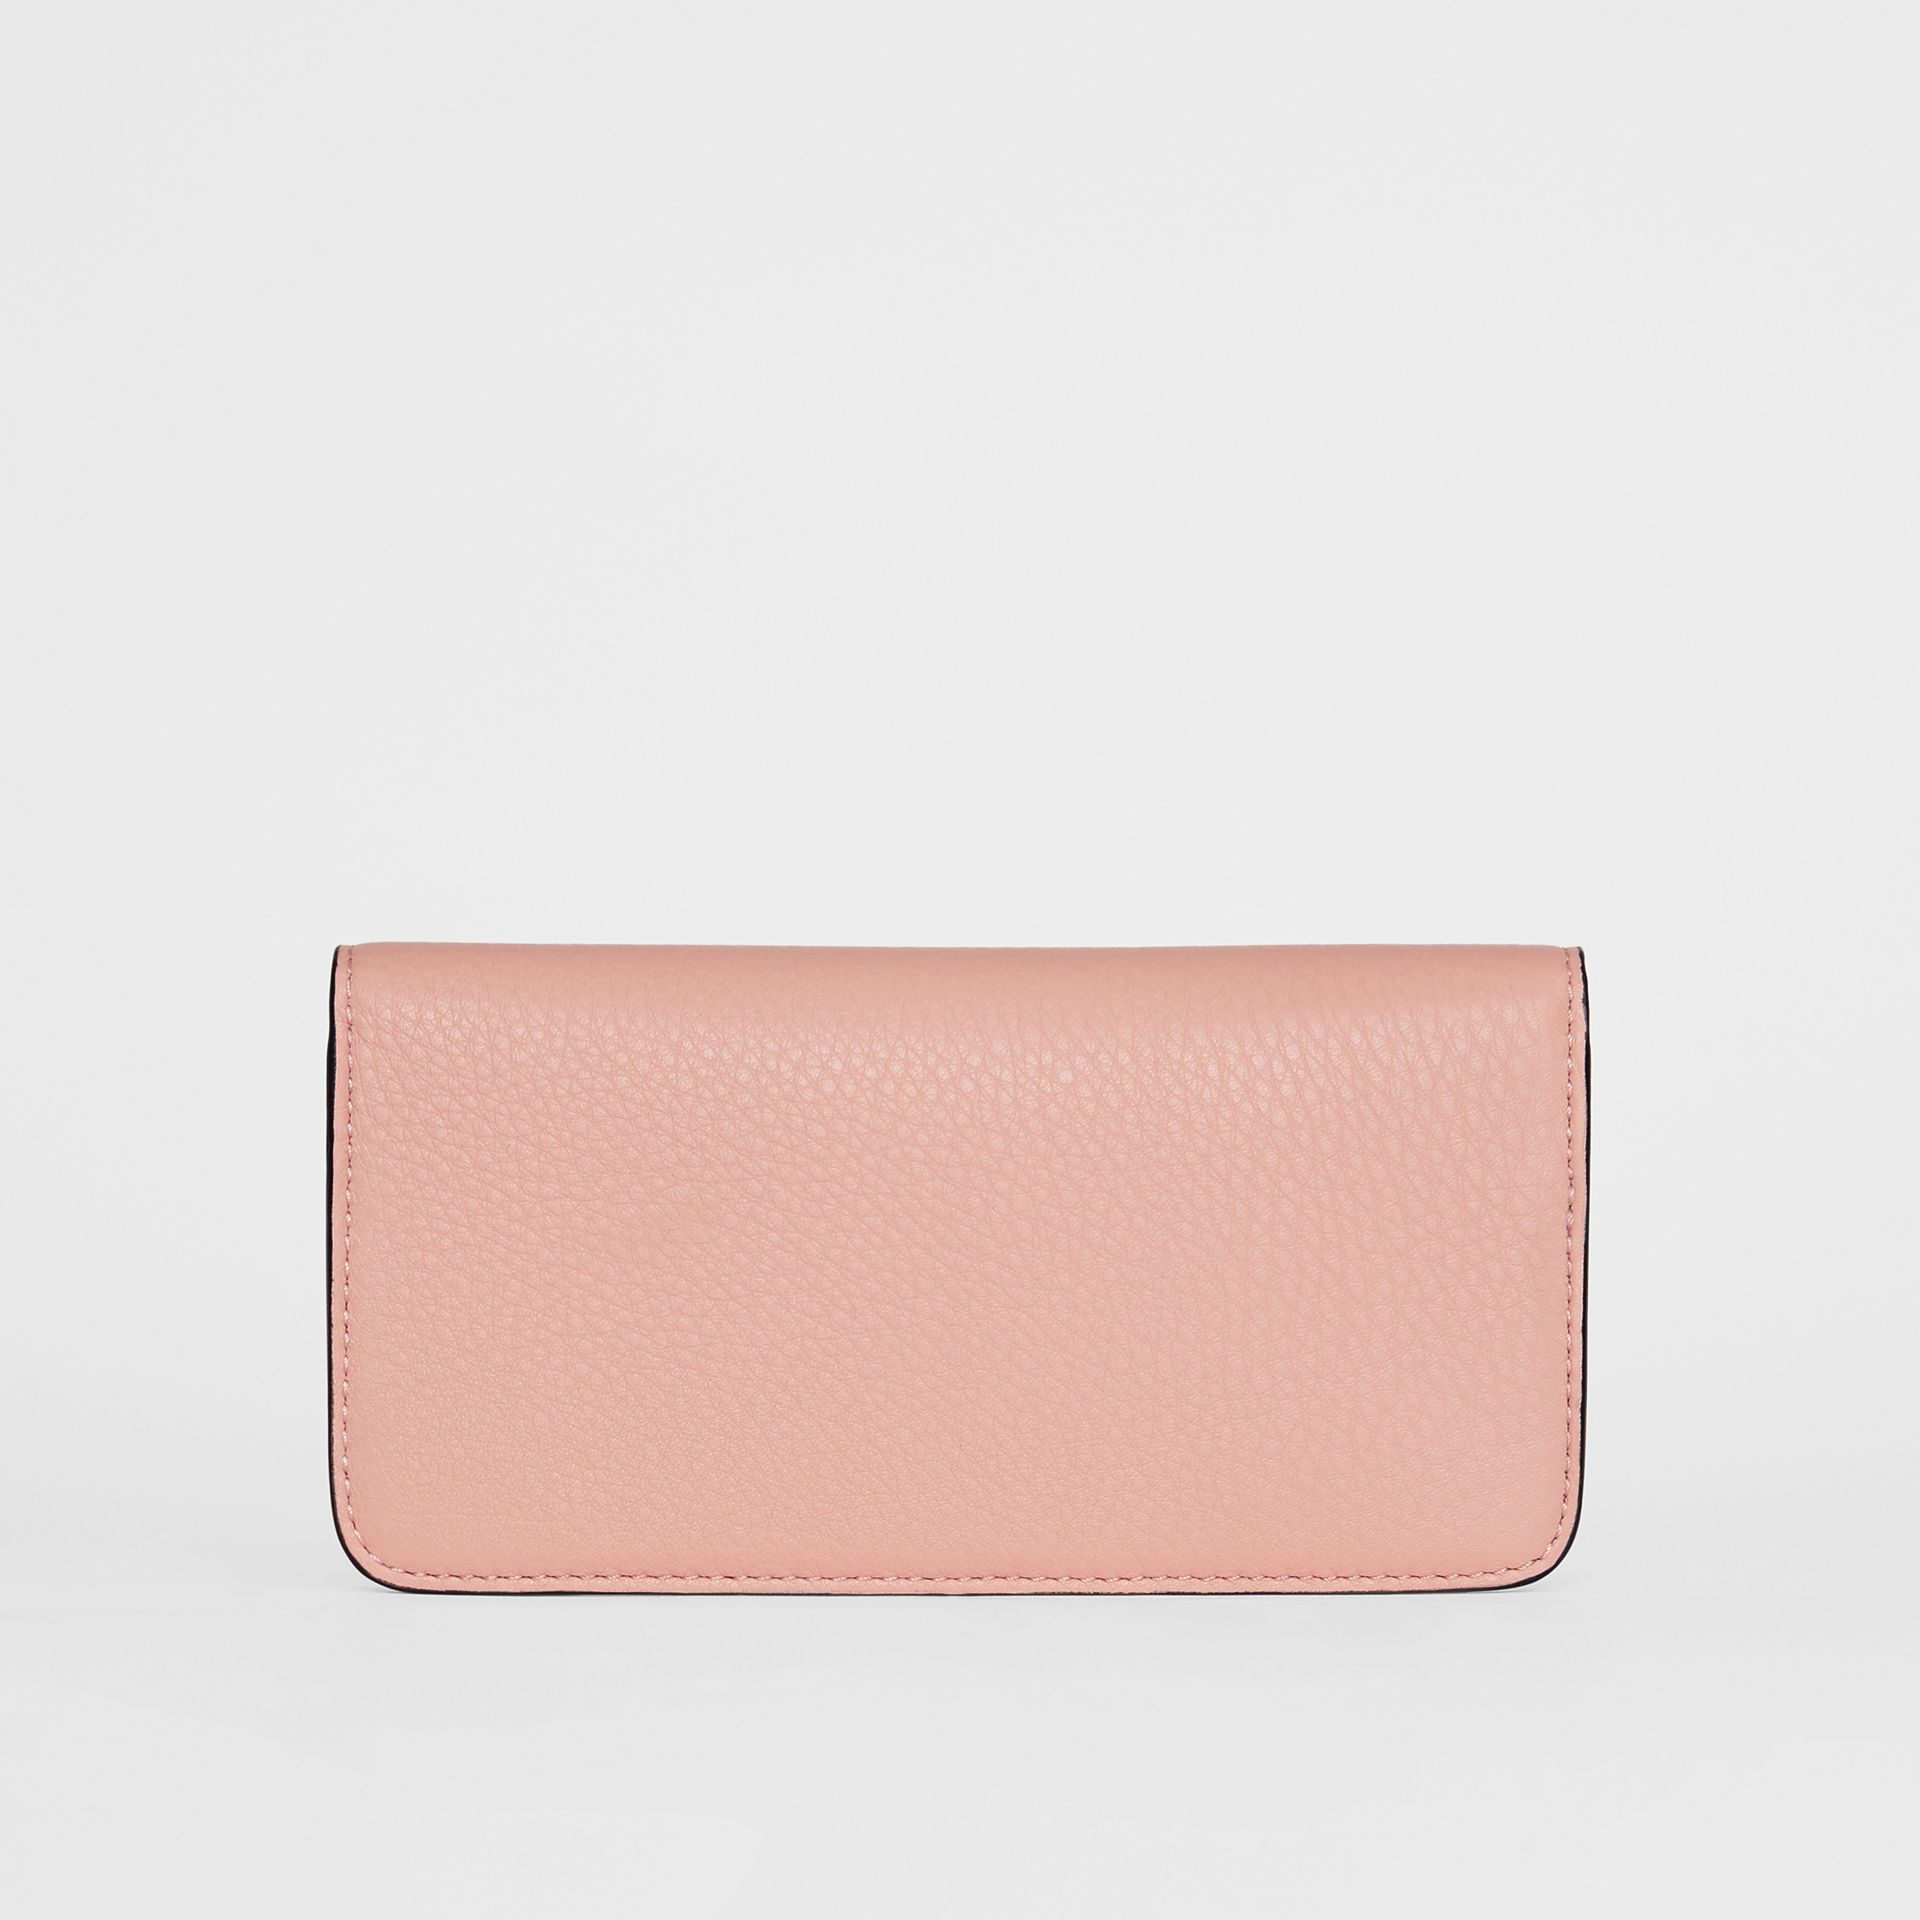 Leather Phone Wallet in Ash Rose - Women | Burberry - gallery image 5